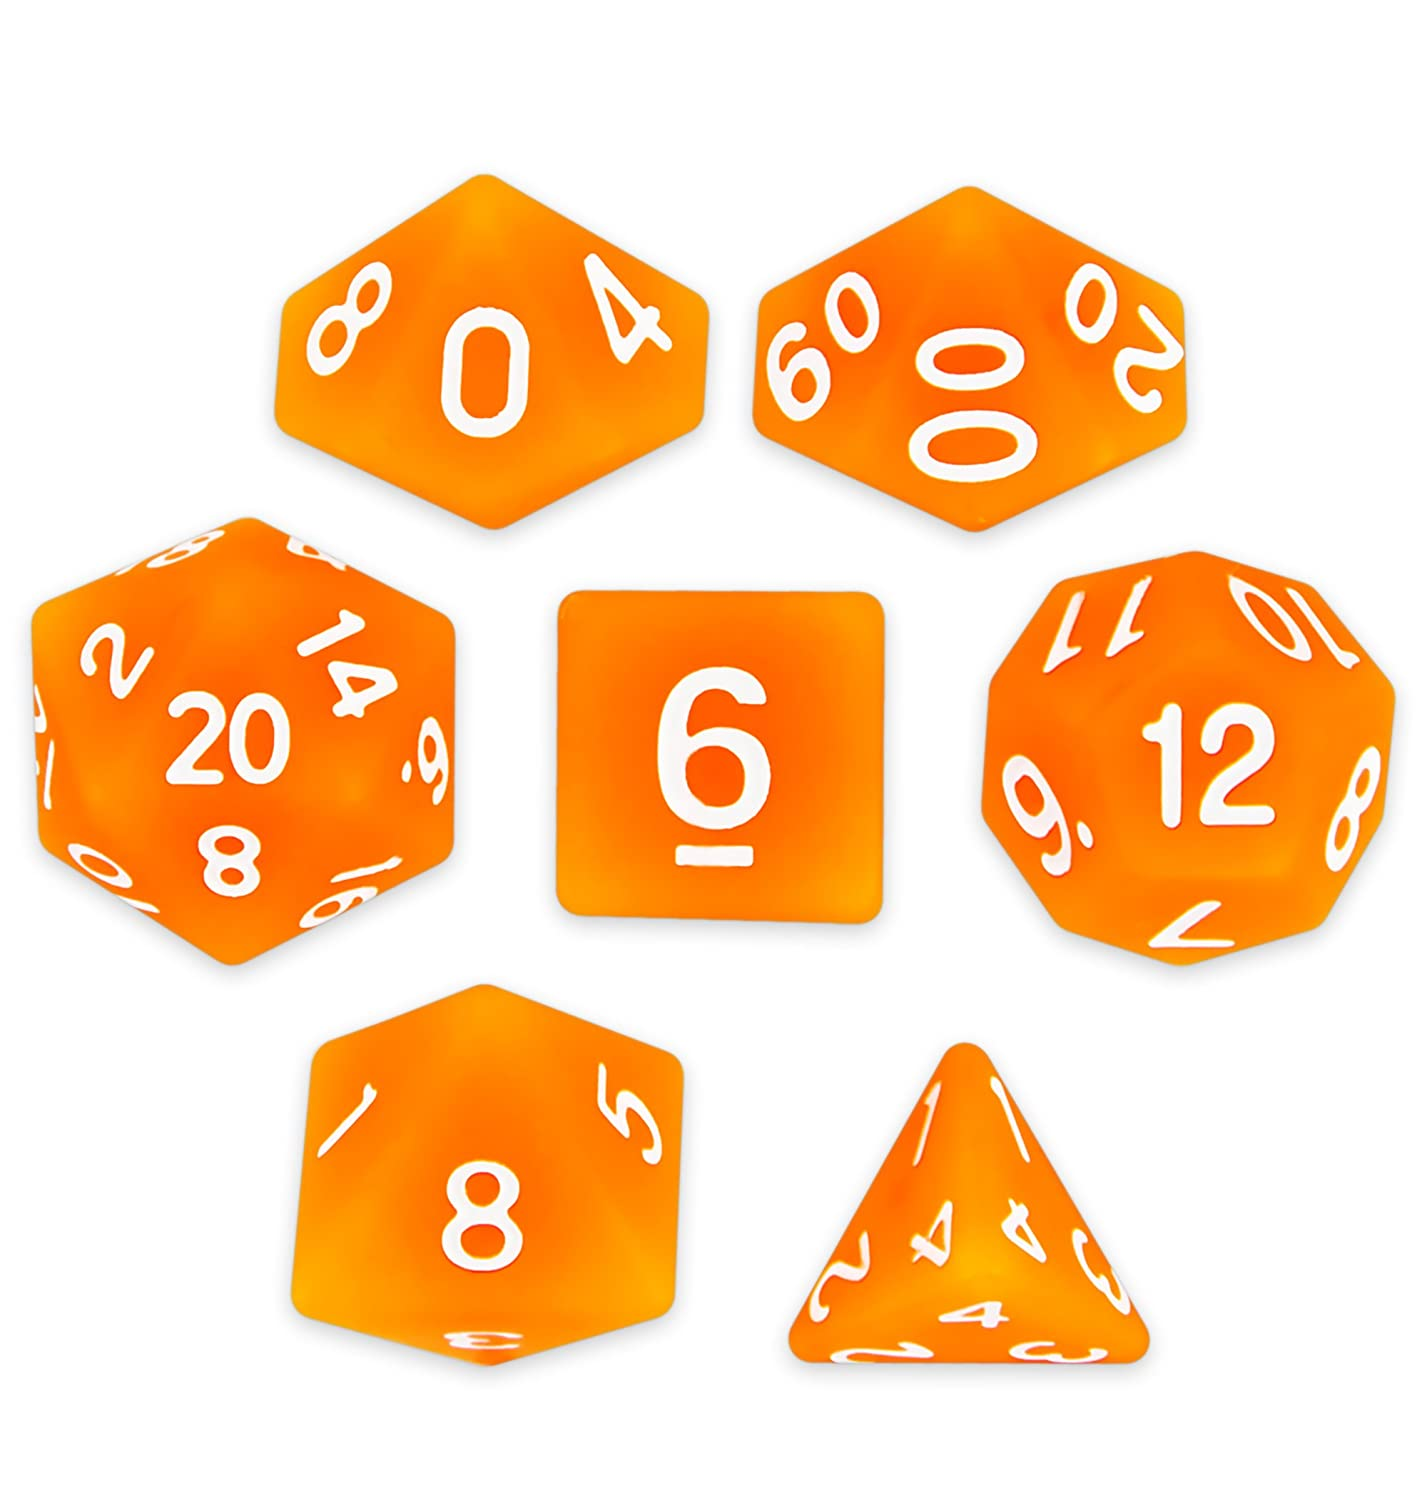 Wiz Dice Forge Embers Set of 7 Polyhedral Dice, Semi-Translucent Matte Finish Hunter Orange Tabletop RPG Dice with Clear Display Box   B07BFB7PBL